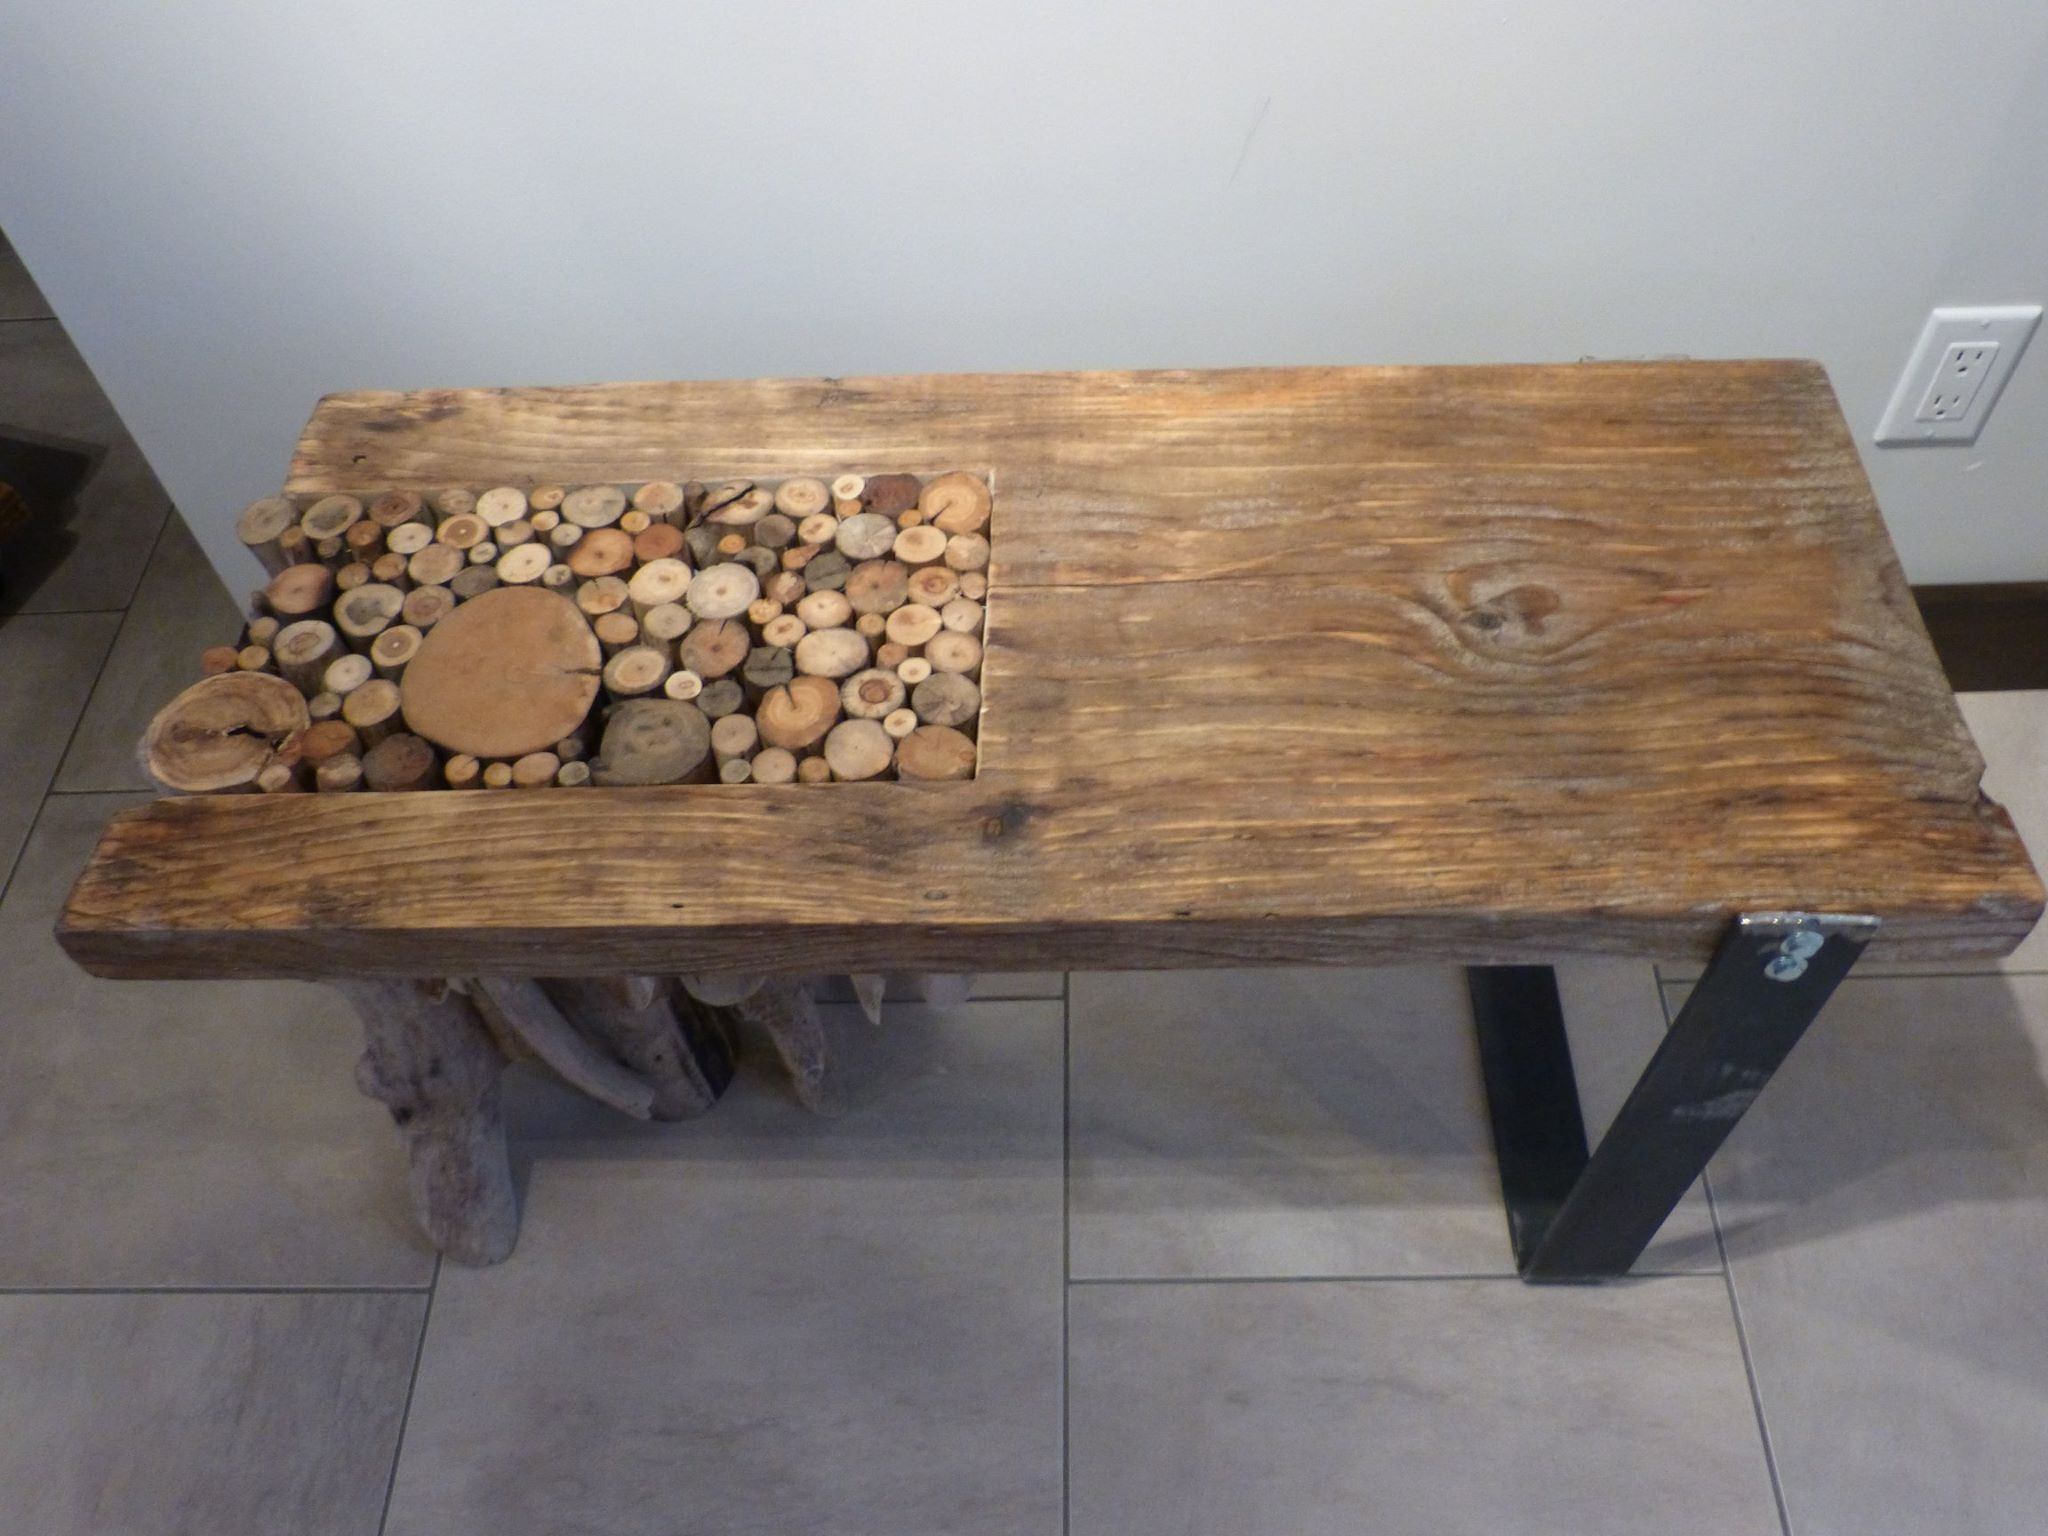 Table De Salon Avec Rondin De Bois Flott Patte En Acier 36 1 2 Po De Long Par 15 Po De Large